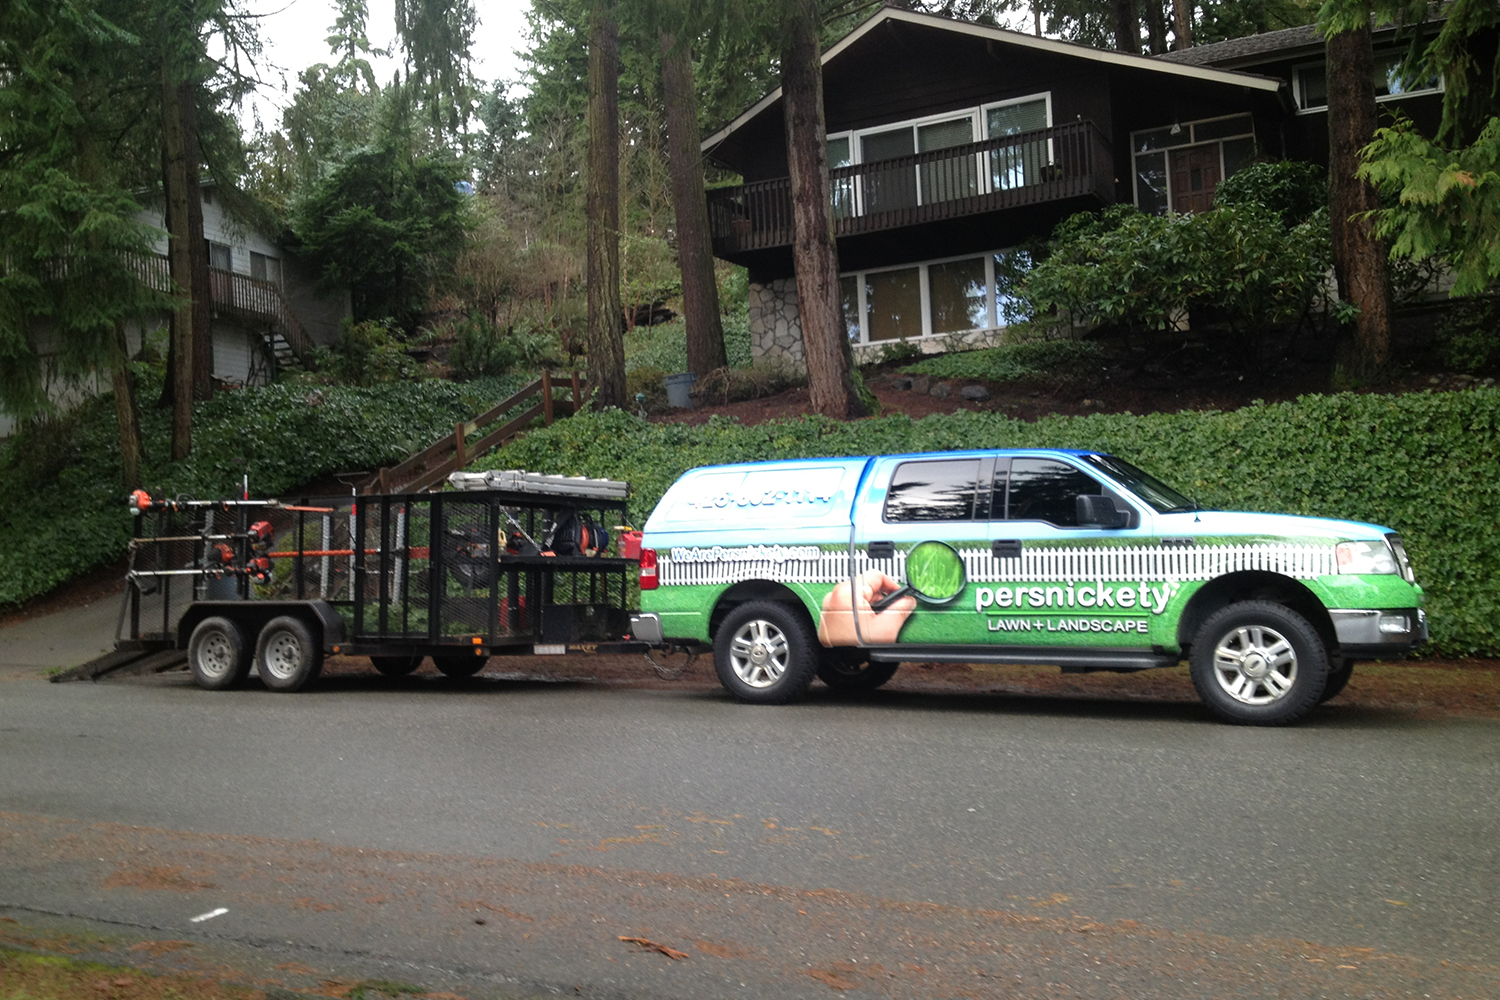 Persnickety lawn and landscape truck and trailer